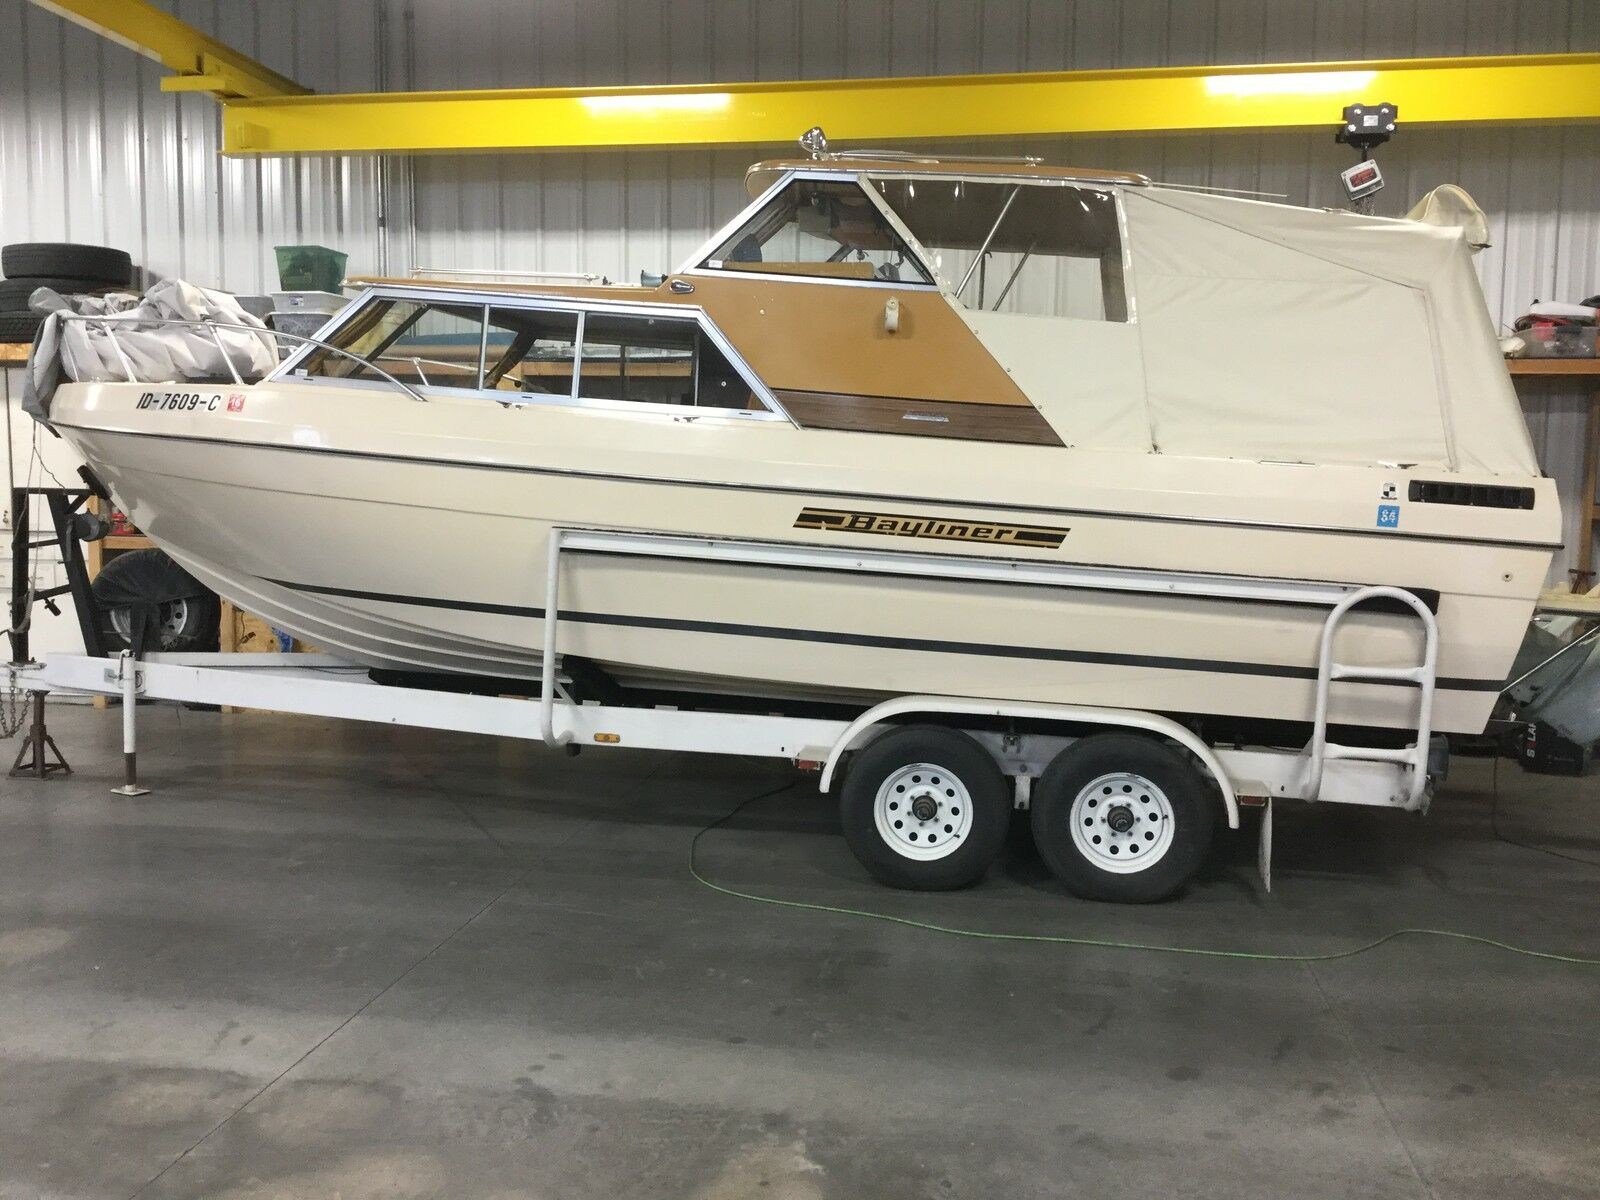 Boat Bayliner 25′ Saratoga Twin 170 Hp Volvo Penta – Find Boat Bargains